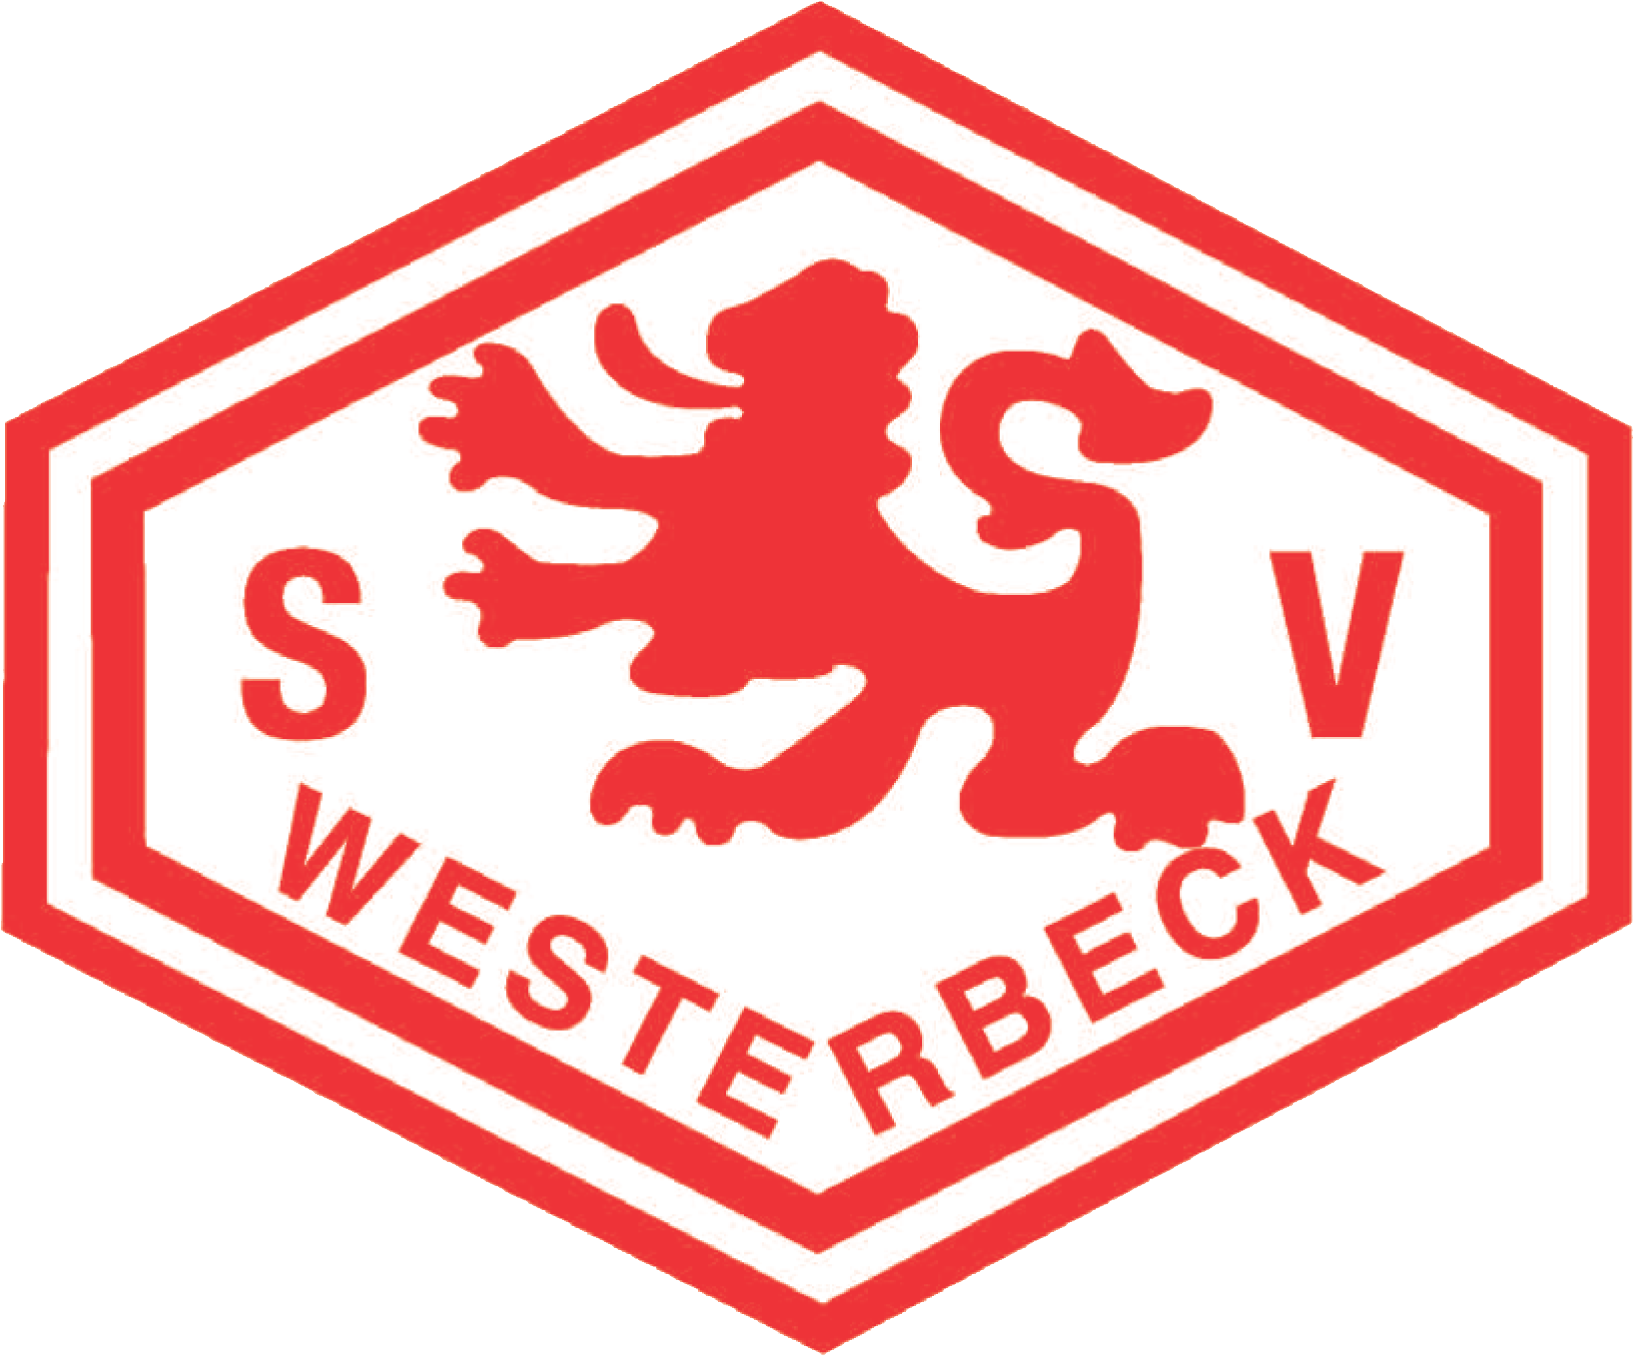 SV Westerbeck